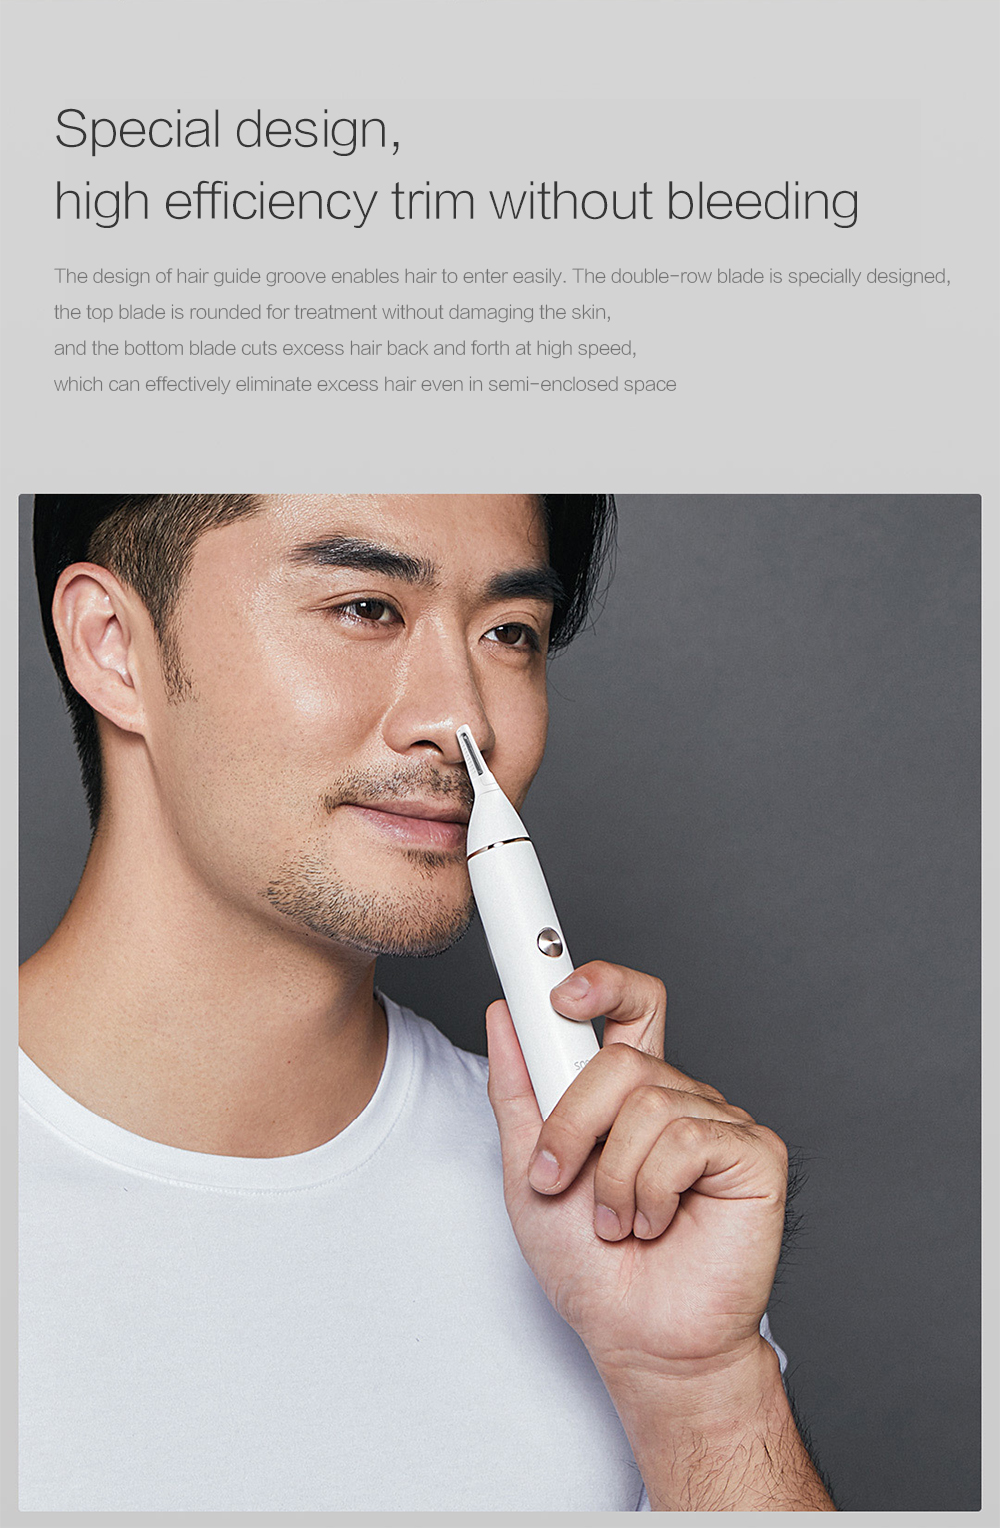 SOOCAS N1 Nose Hair Trimmer from Xiaomi Youpin